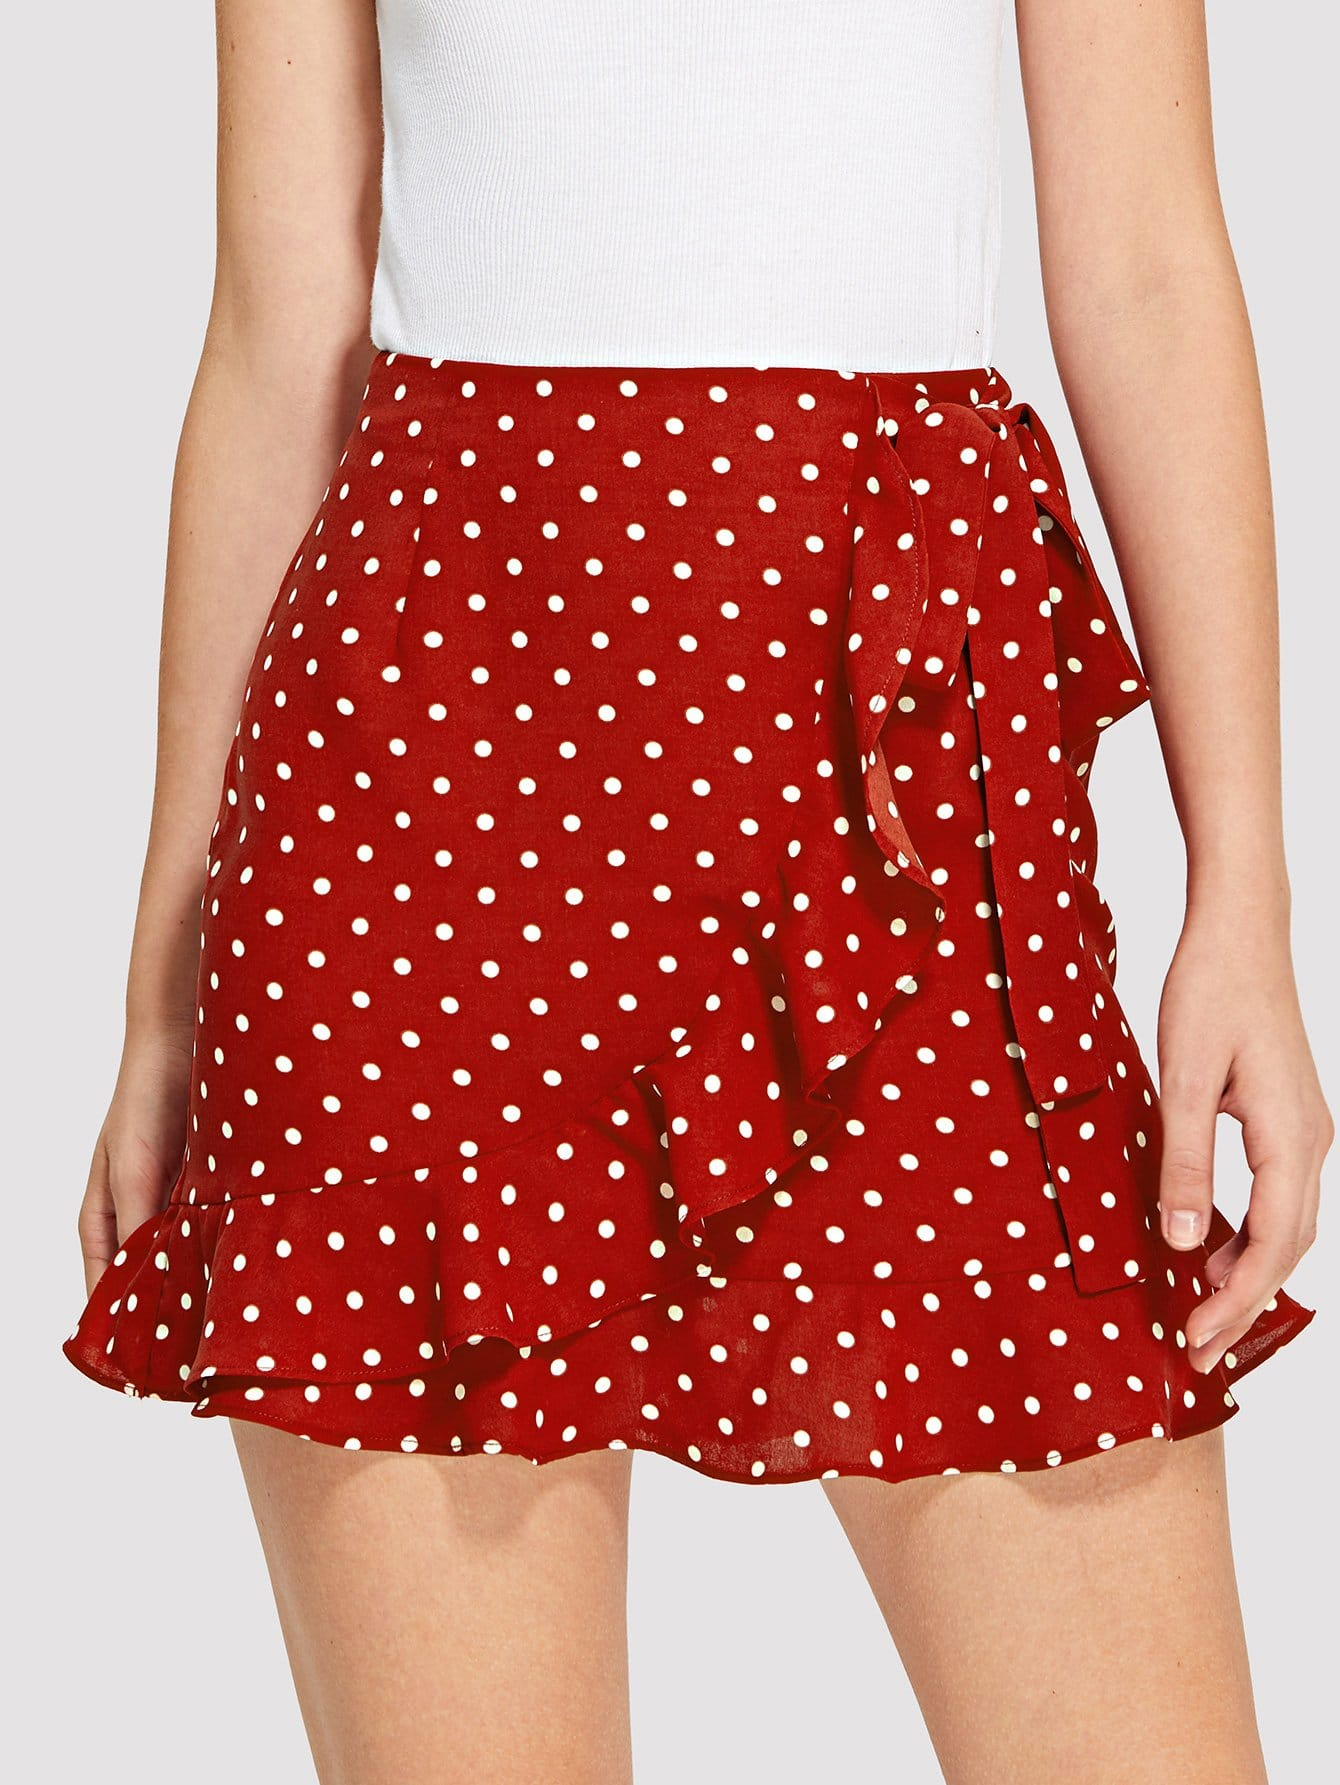 Knot Side Overlap Ruffle Trim Dot Skirt knot side overlap ruffle trim dot skirt